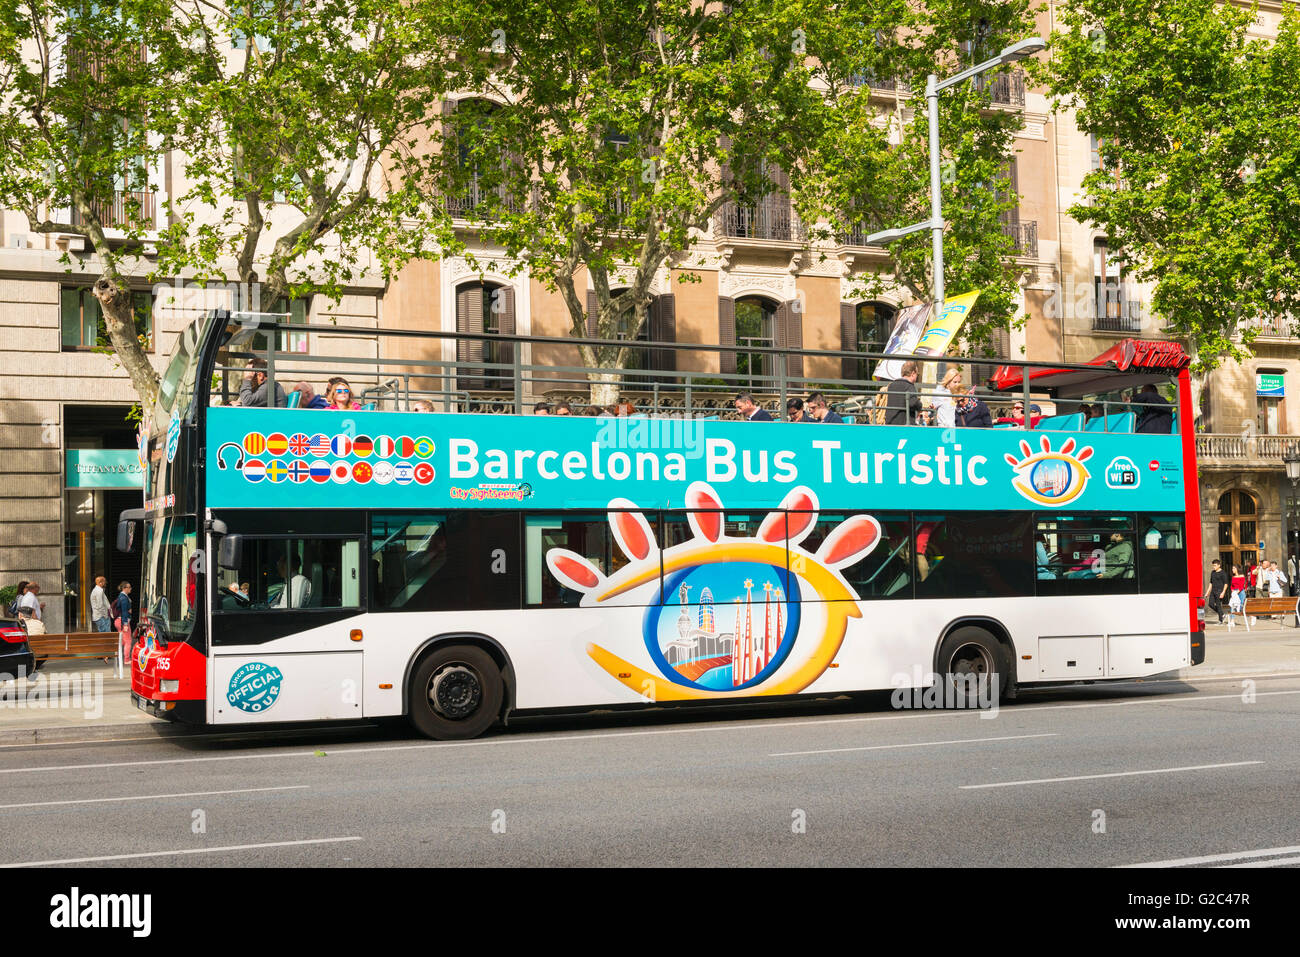 Spain Catalonia Eixample Passeig de Gracia Barcelona Bus Turistic tourist double decker open top - Stock Image